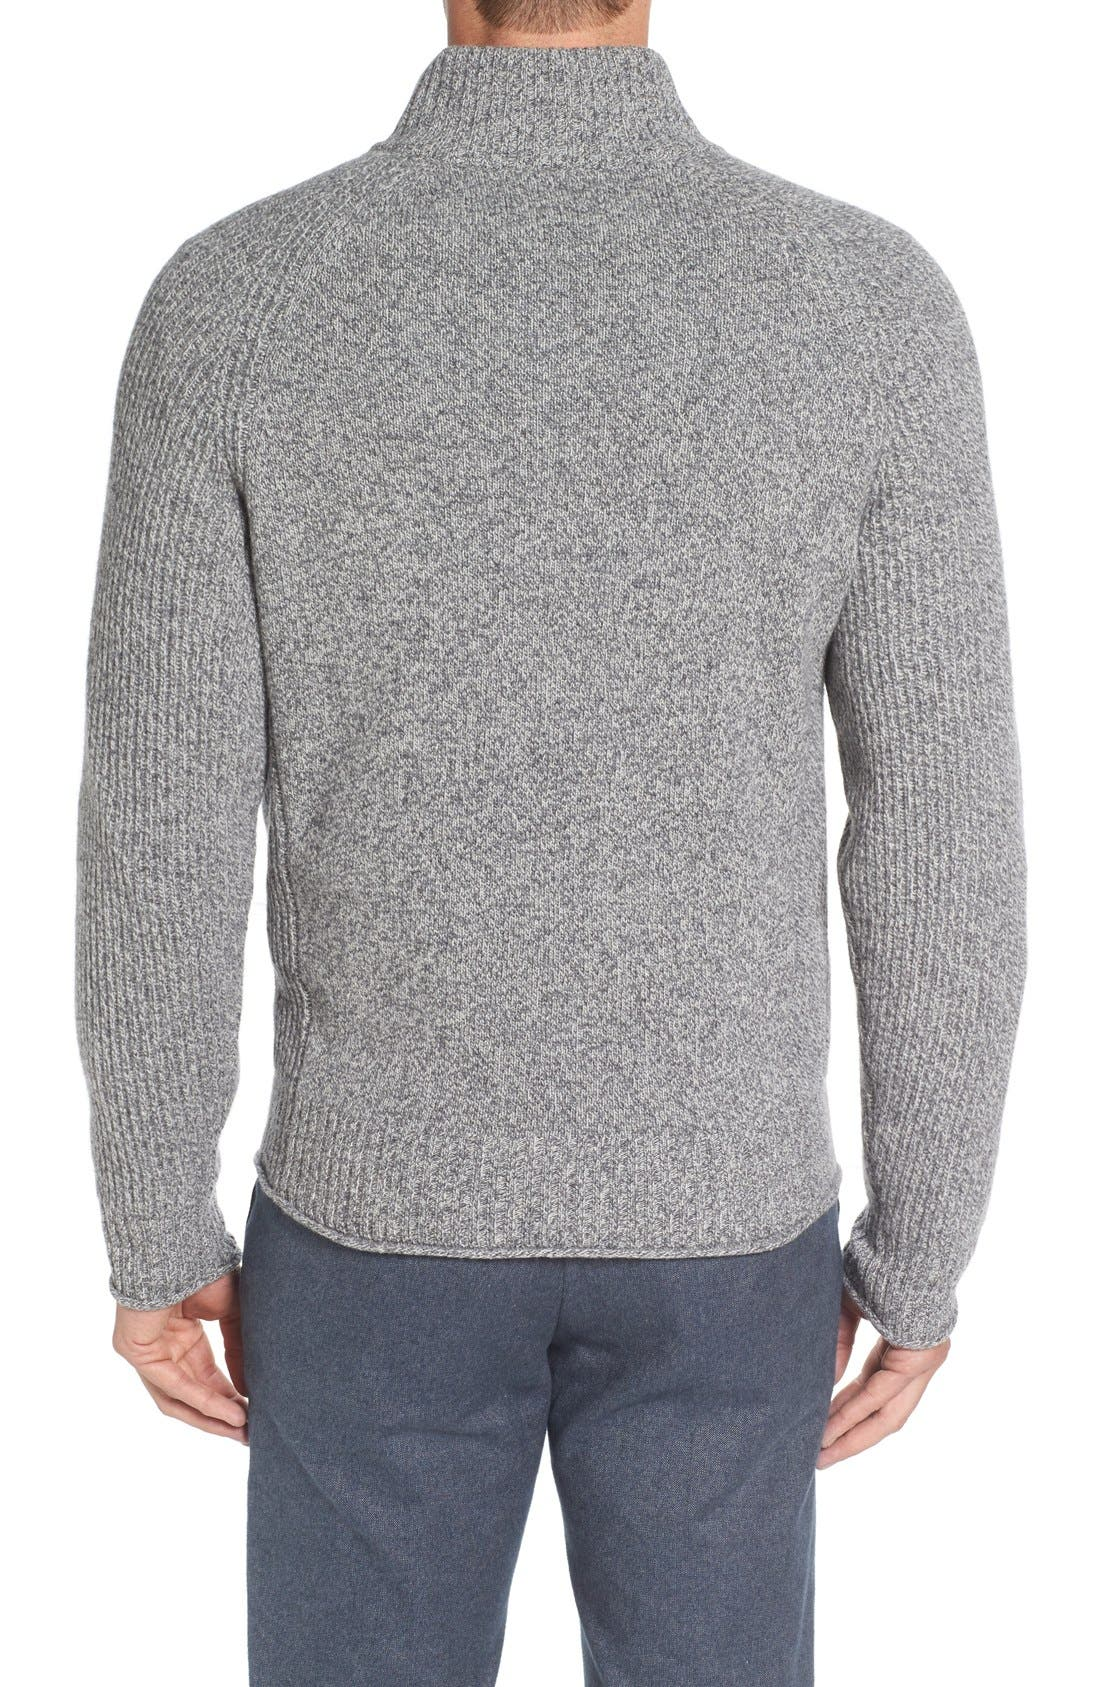 Stredwick Lambswool Sweater,                             Alternate thumbnail 9, color,